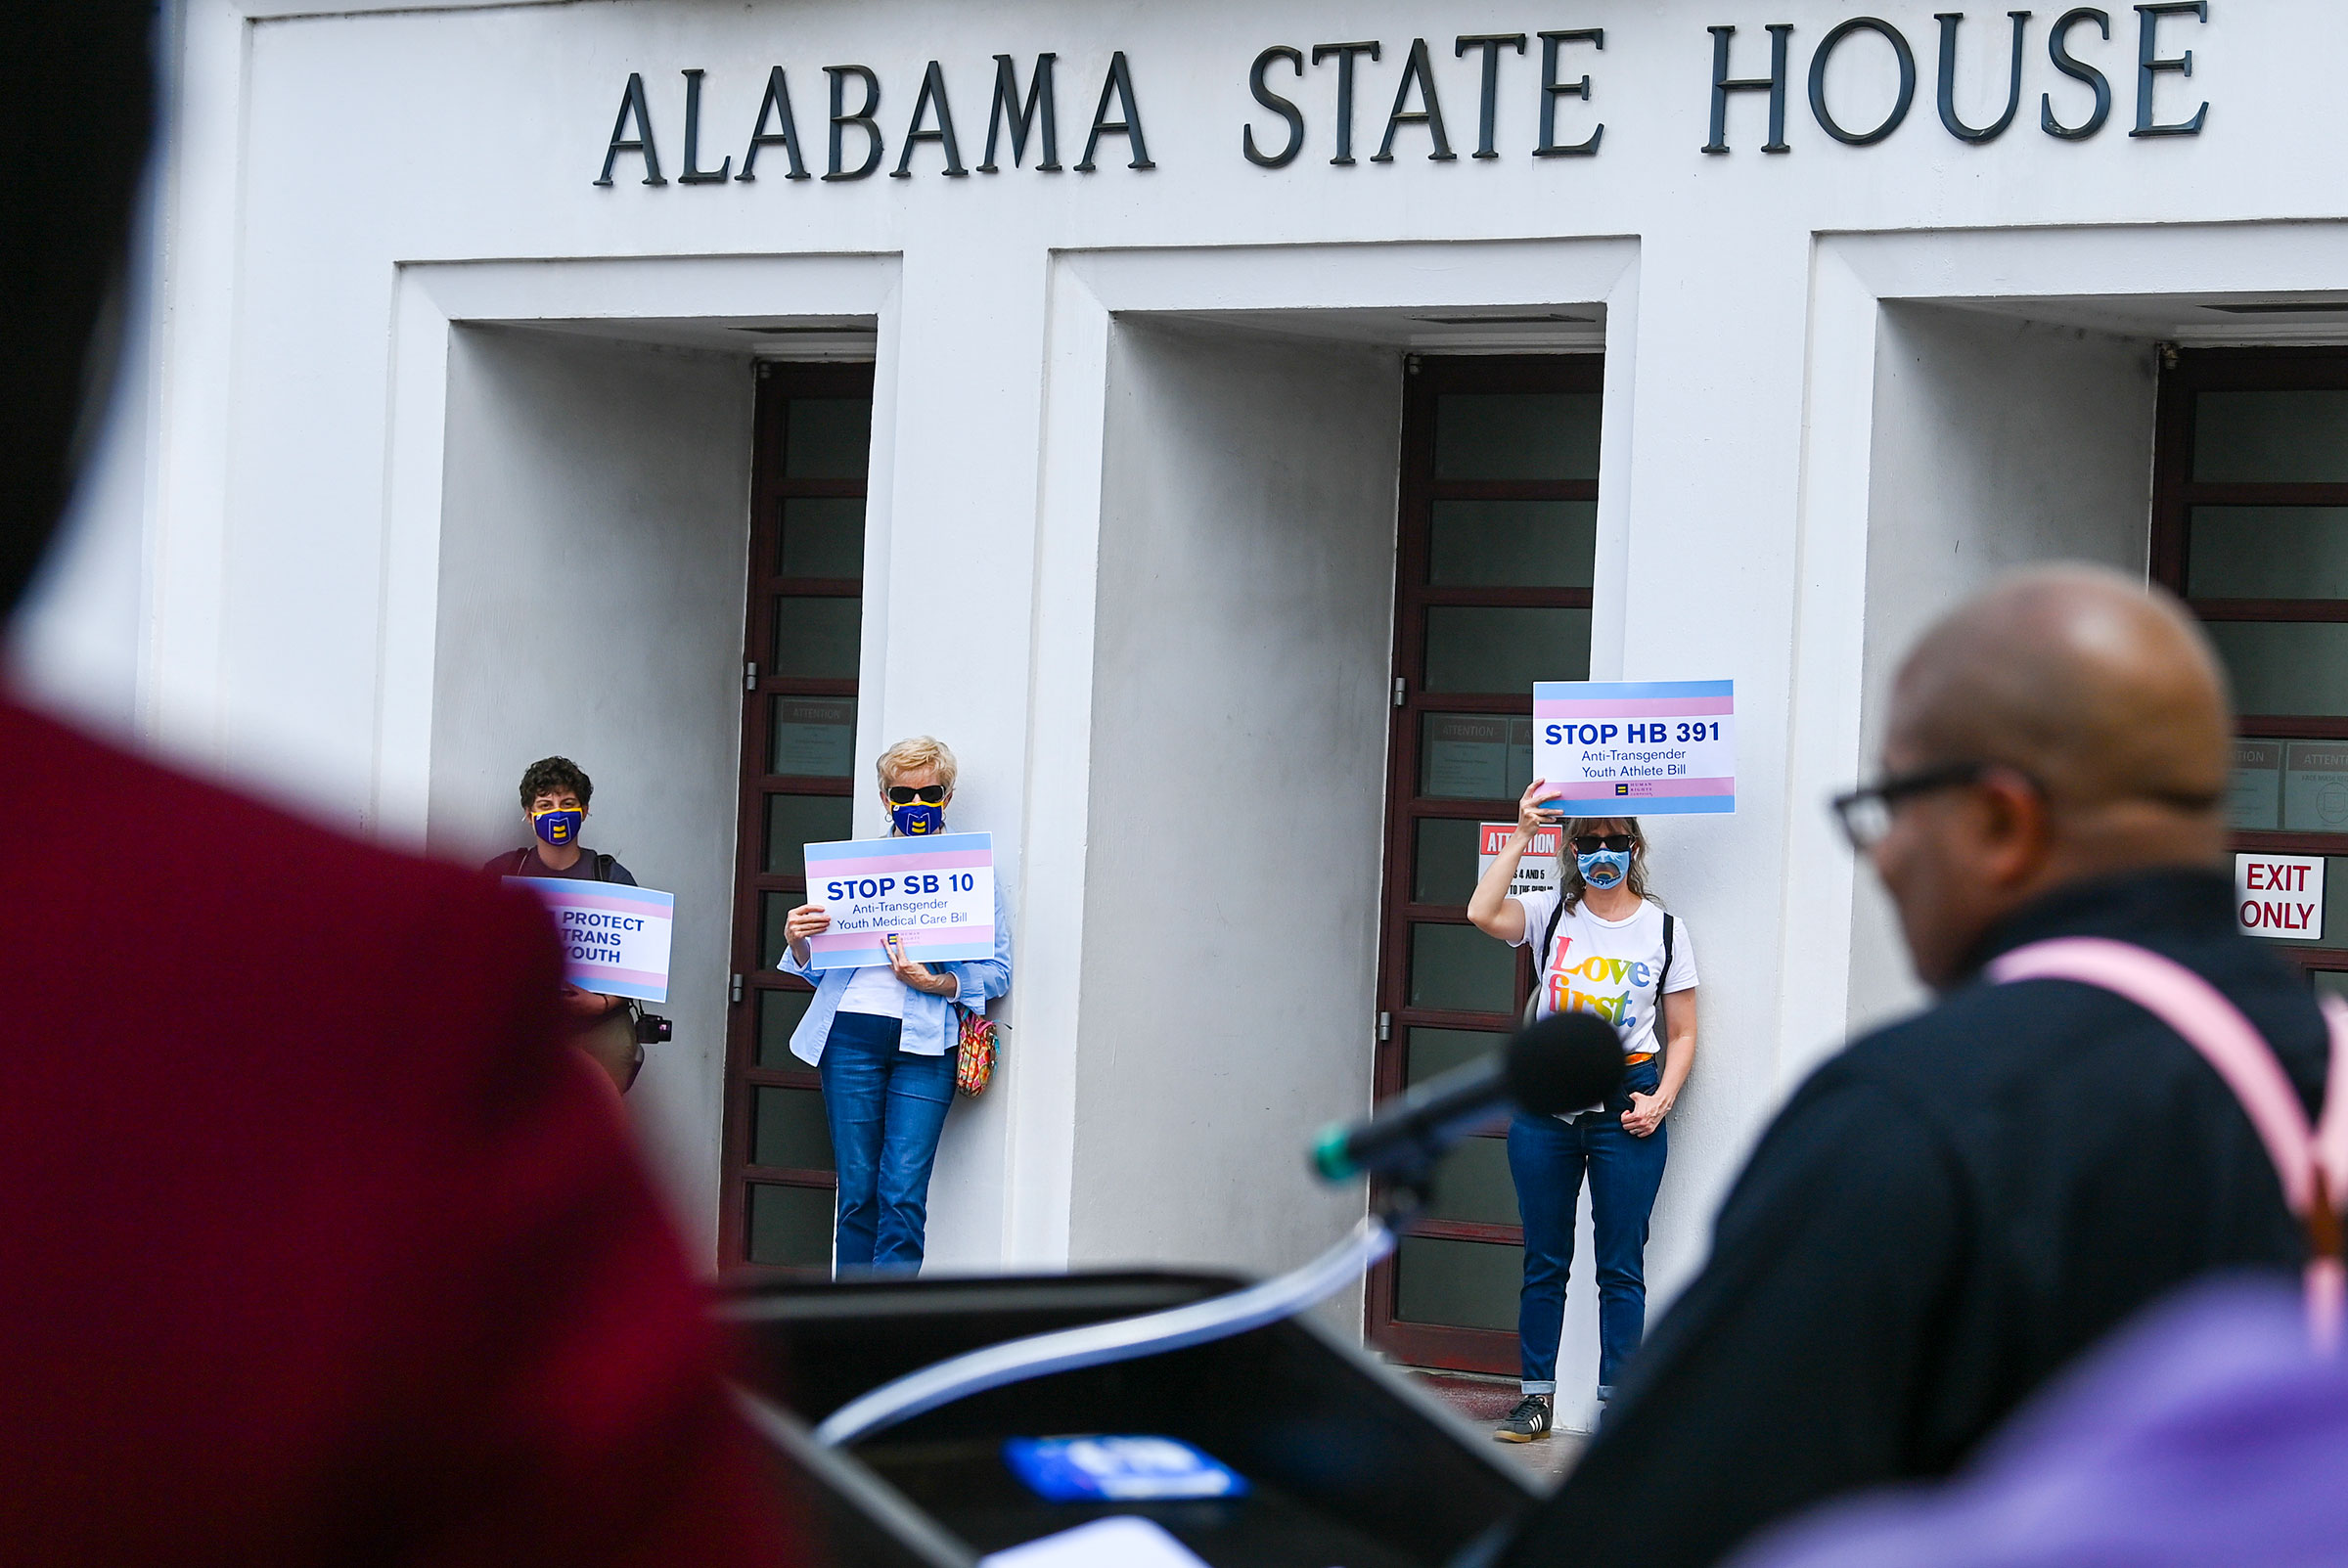 Opponents of several bills targeting transgender youth attend a rally at the Alabama State House to draw attention to anti-transgender legislation introduced in Alabama on March 30, 2021.